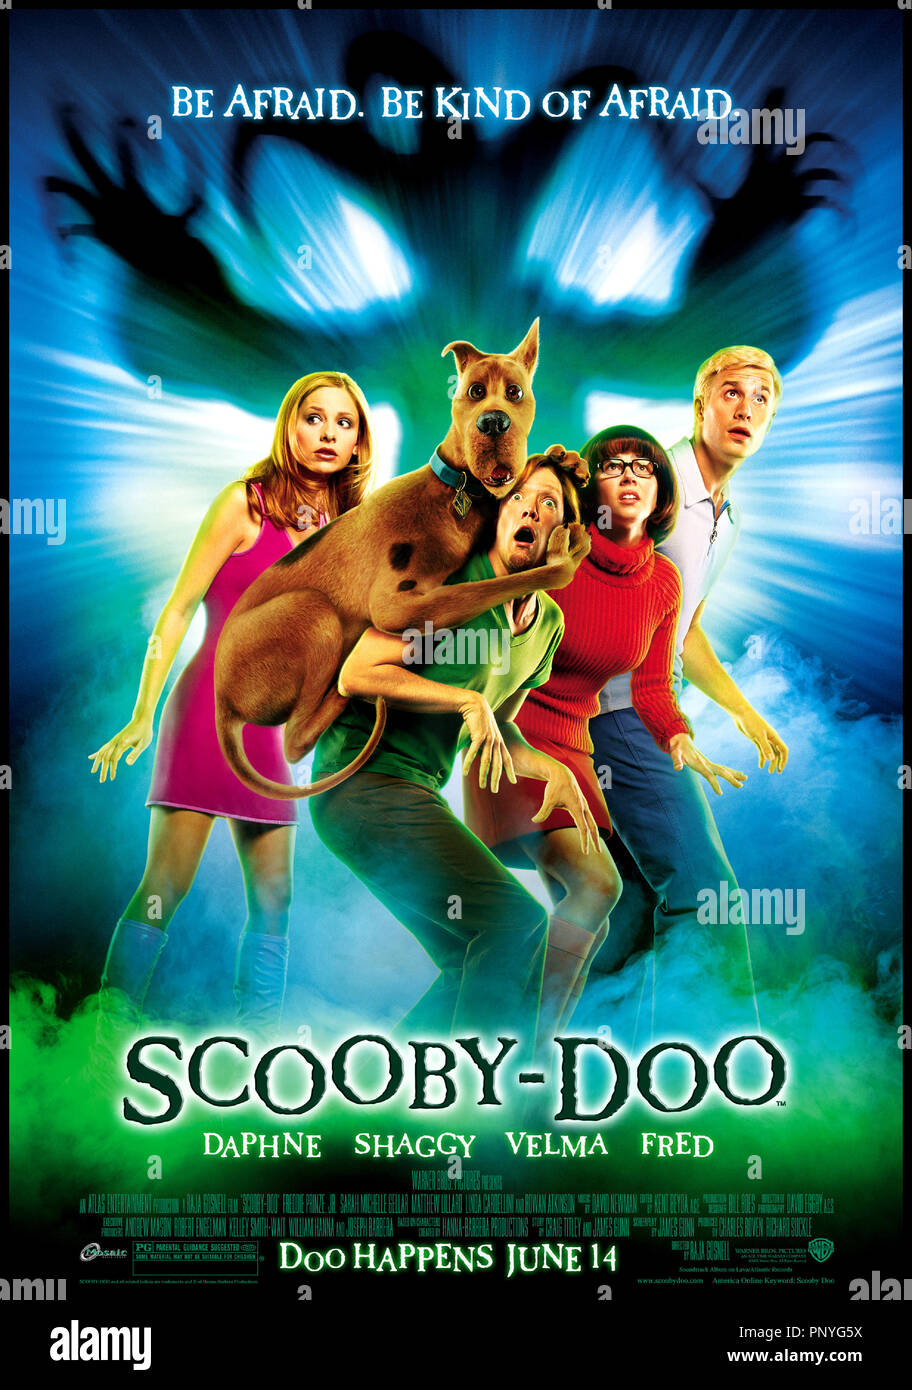 Scooby doo scooby 2002 stock photos scooby doo scooby 2002 stock images alamy - Personnage scooby doo ...